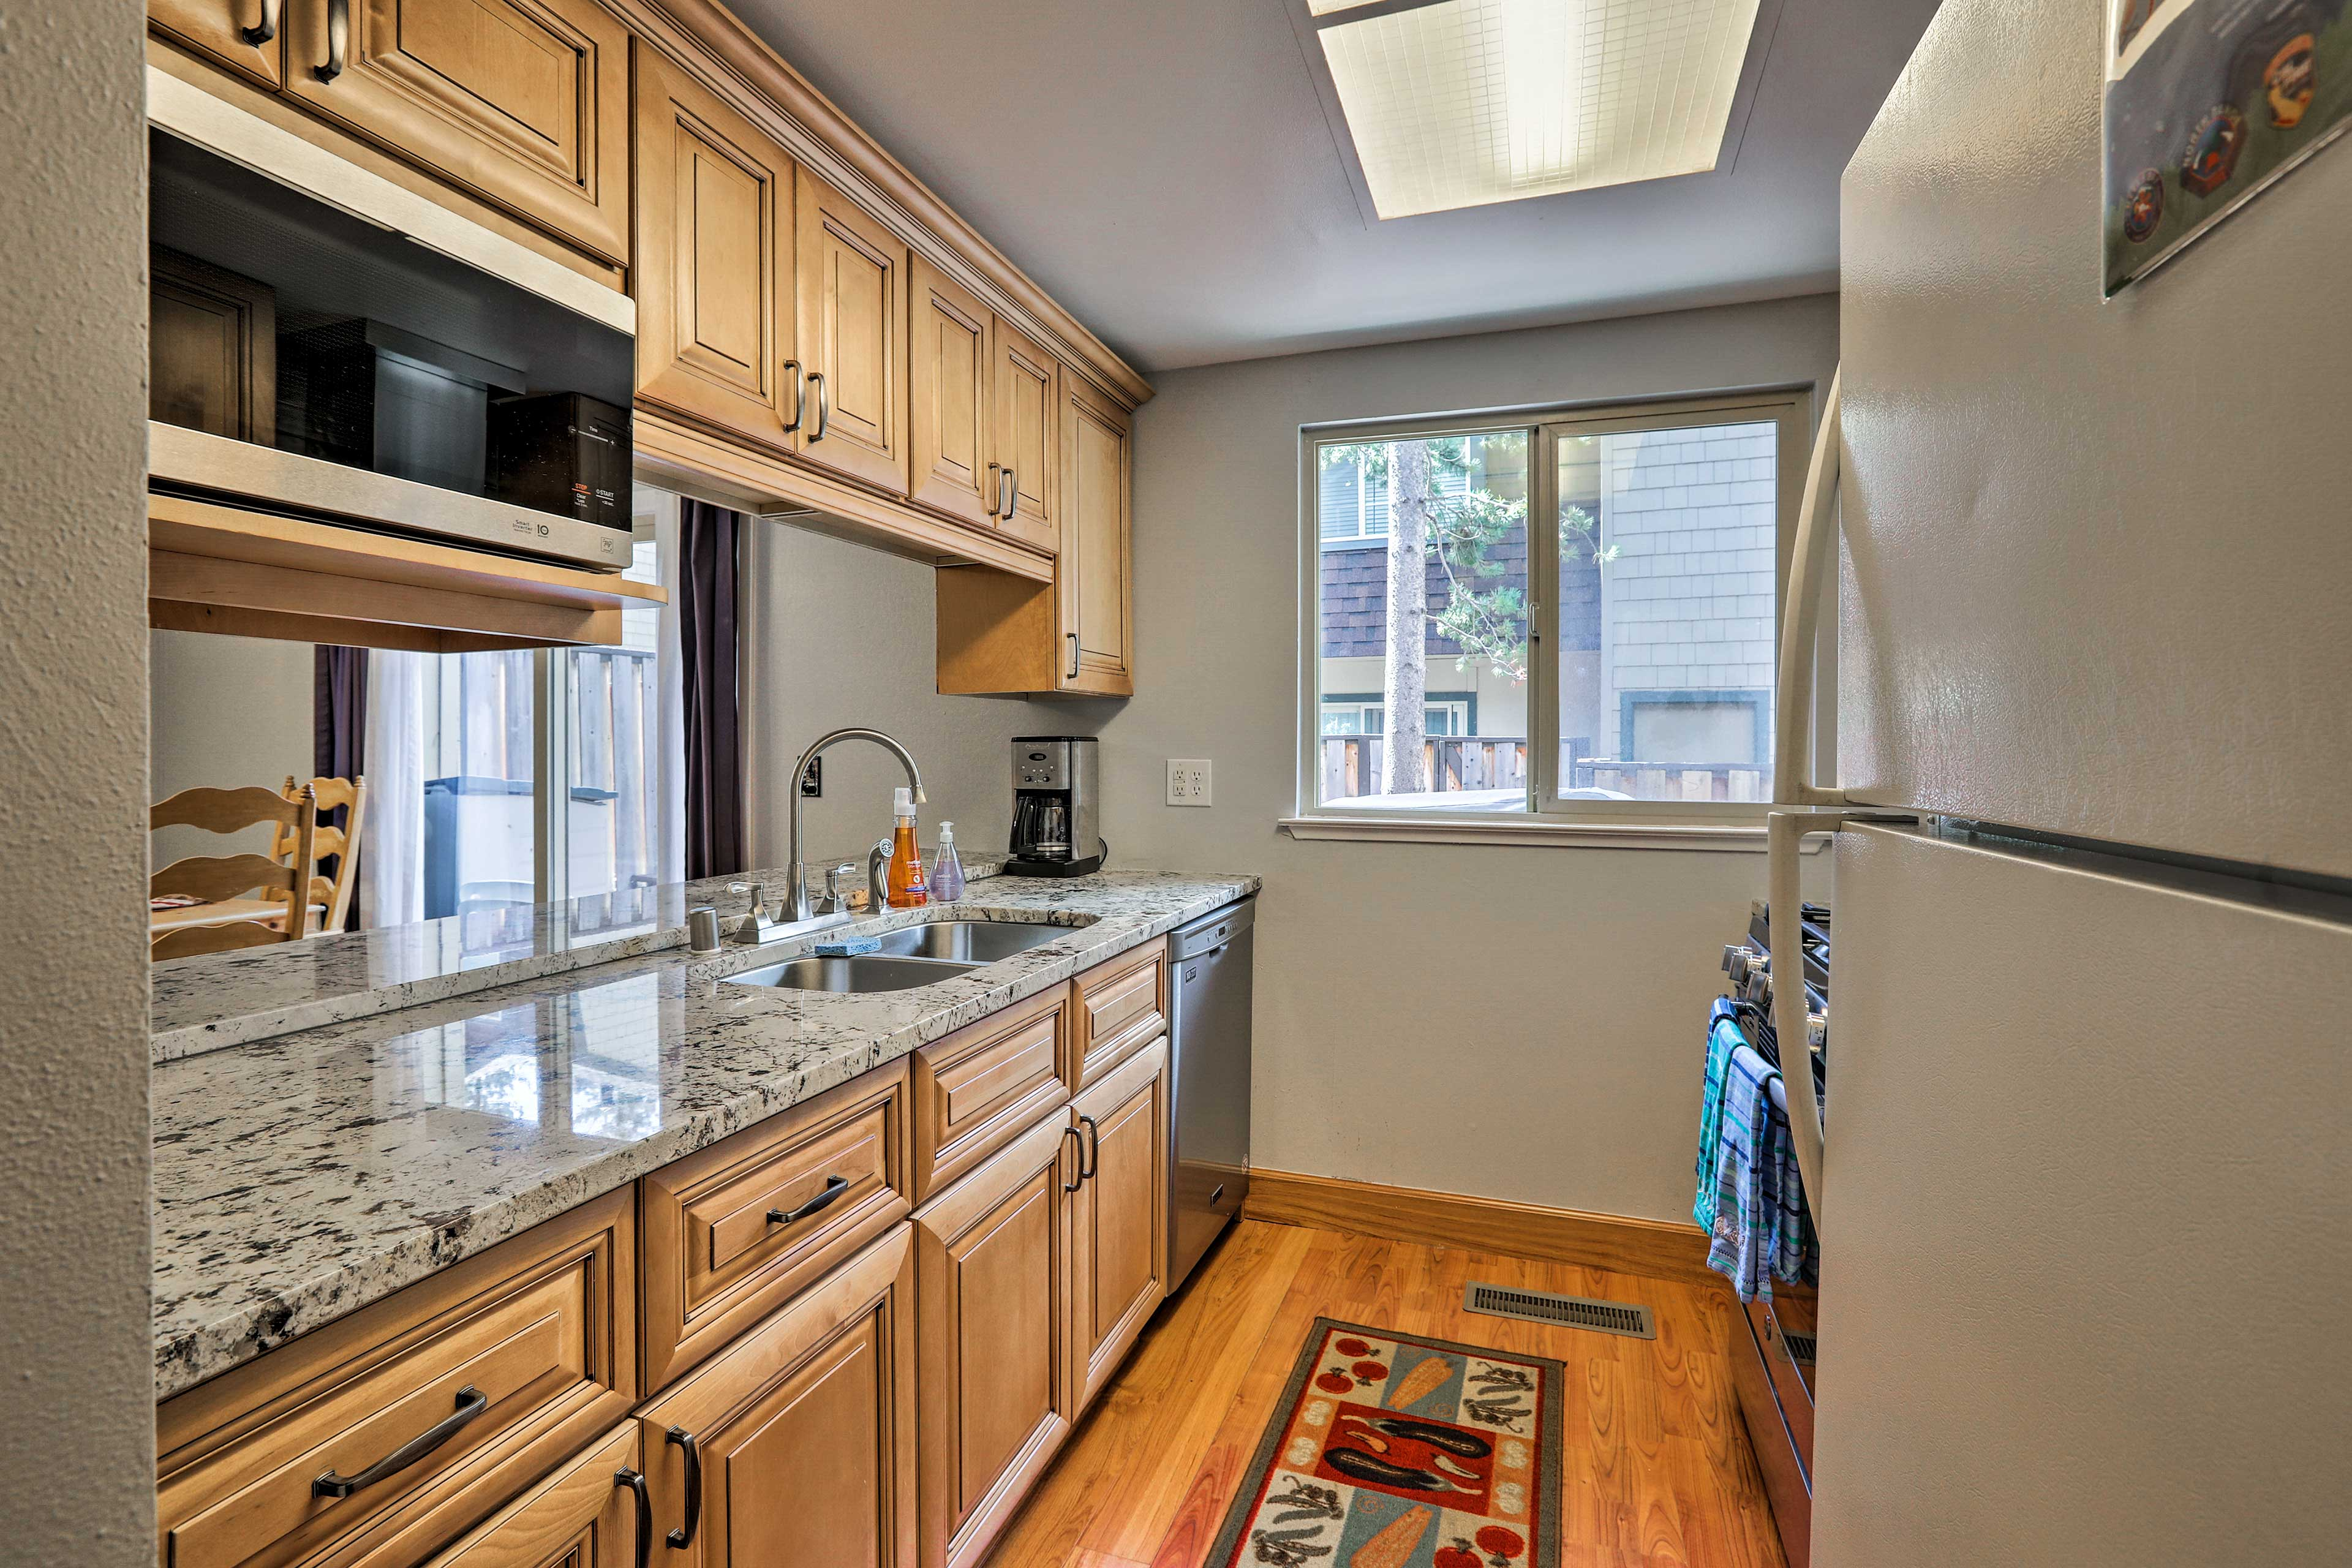 The fully equipped kitchen makes it easy to prepare feasts!